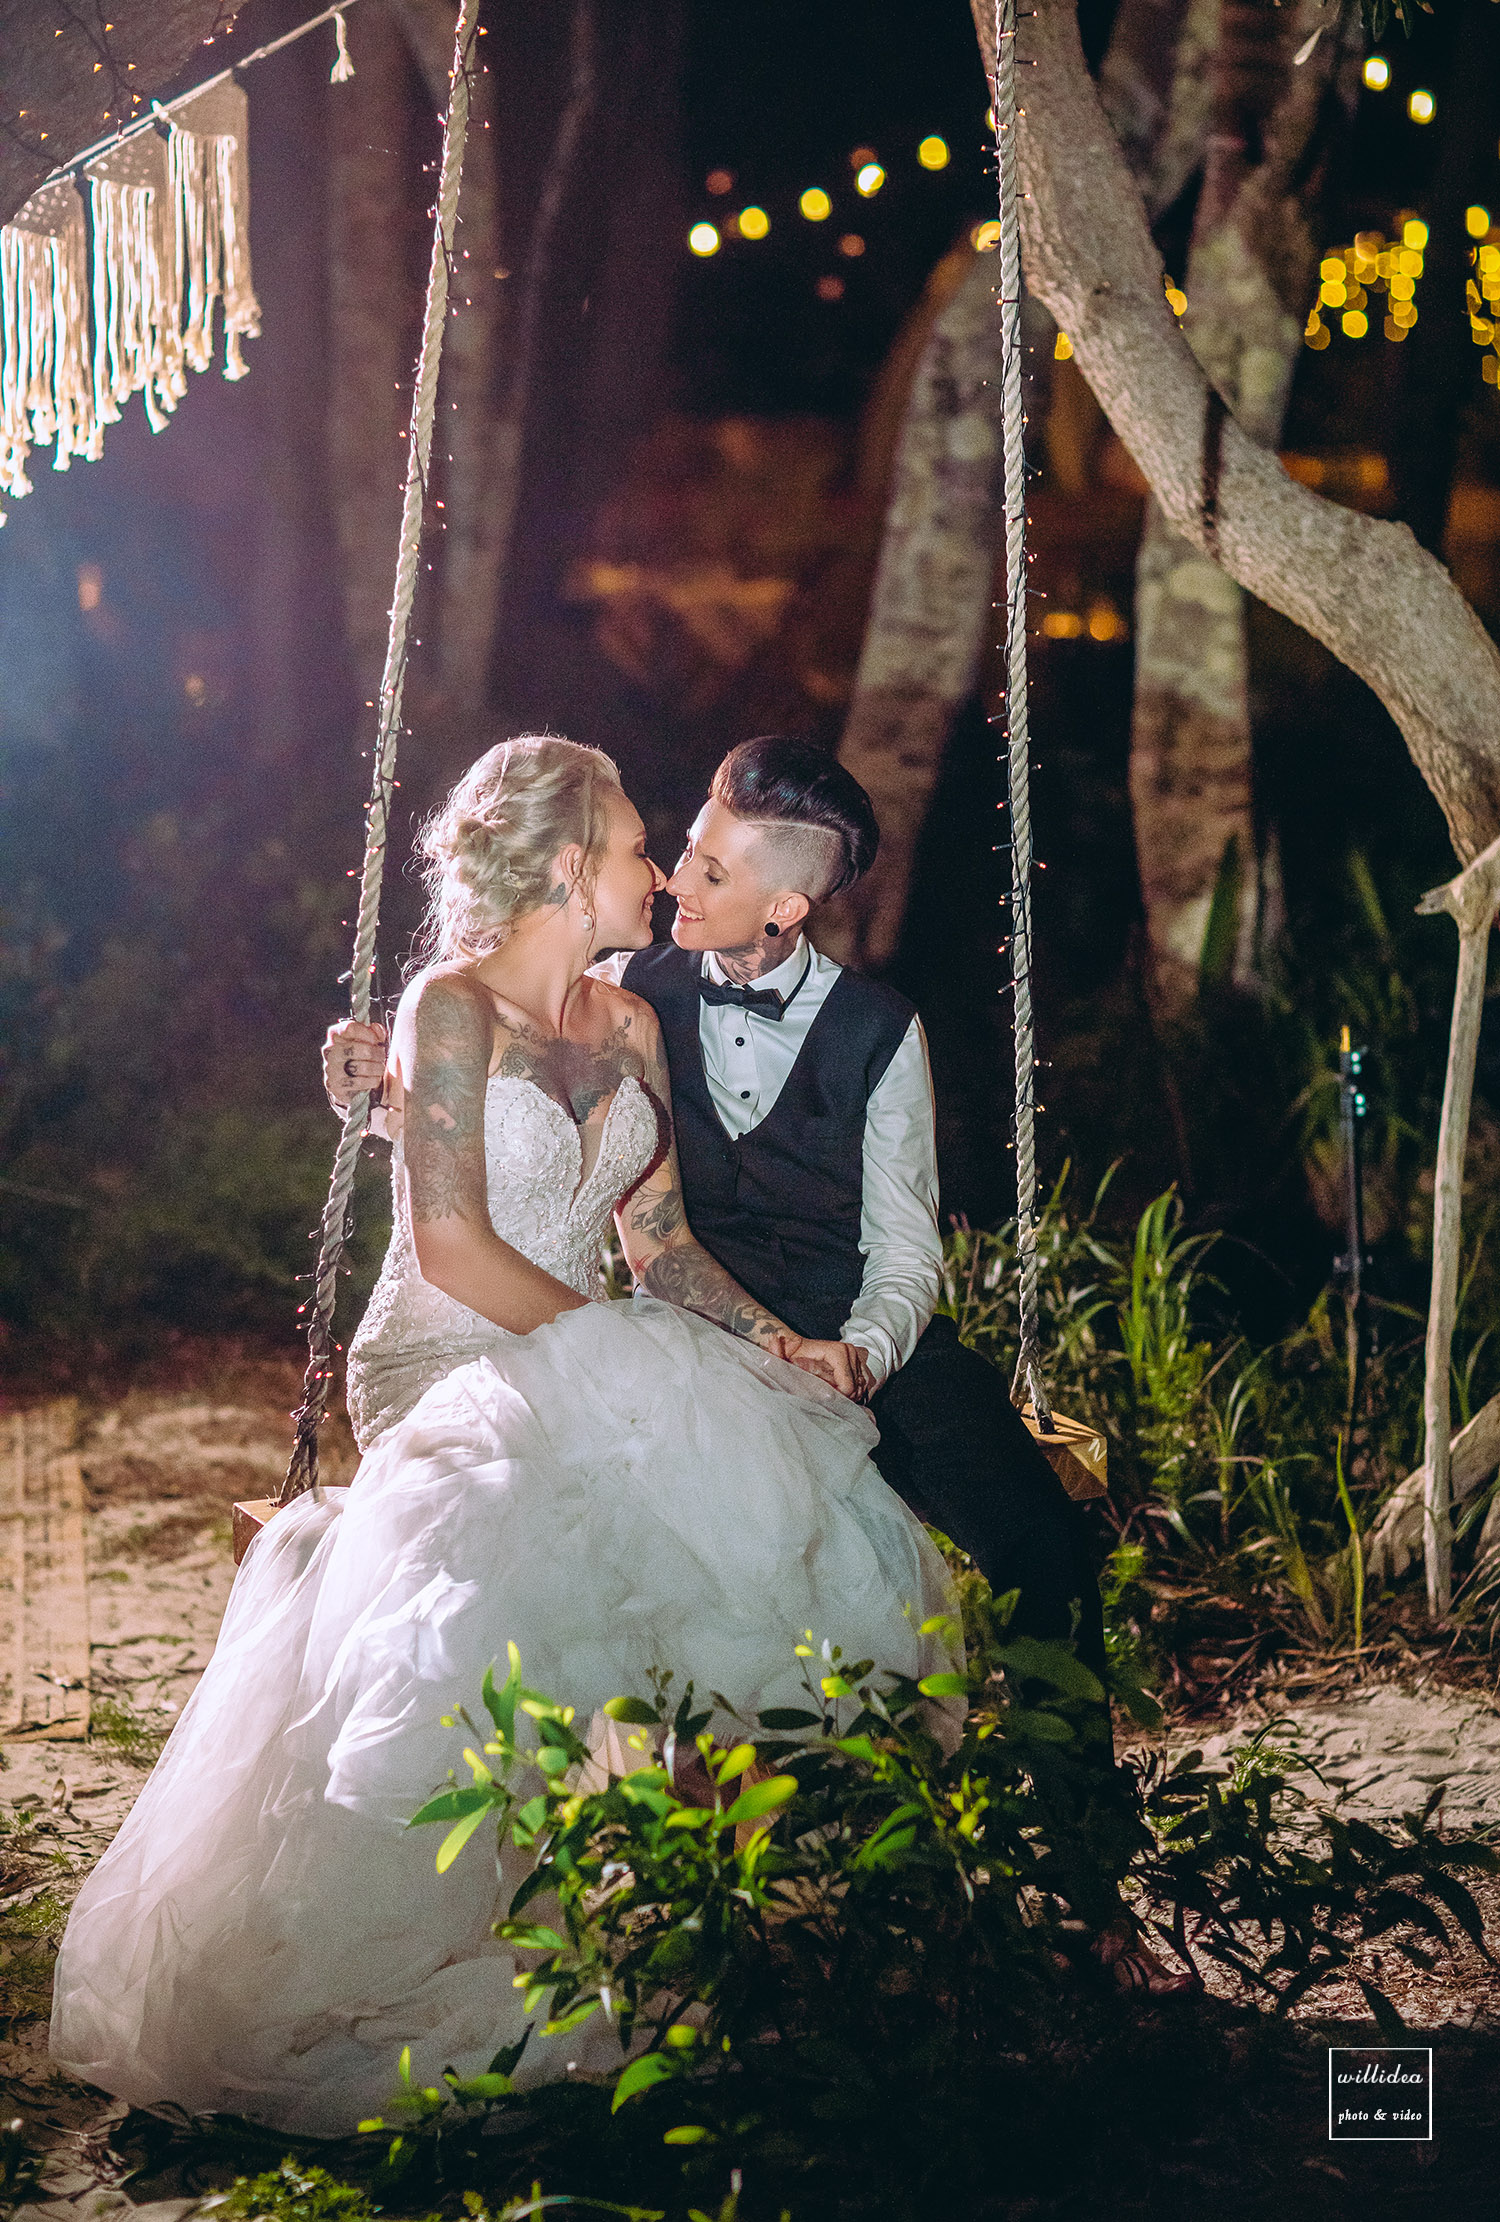 Professional Wedding Photographer in Gold Coast